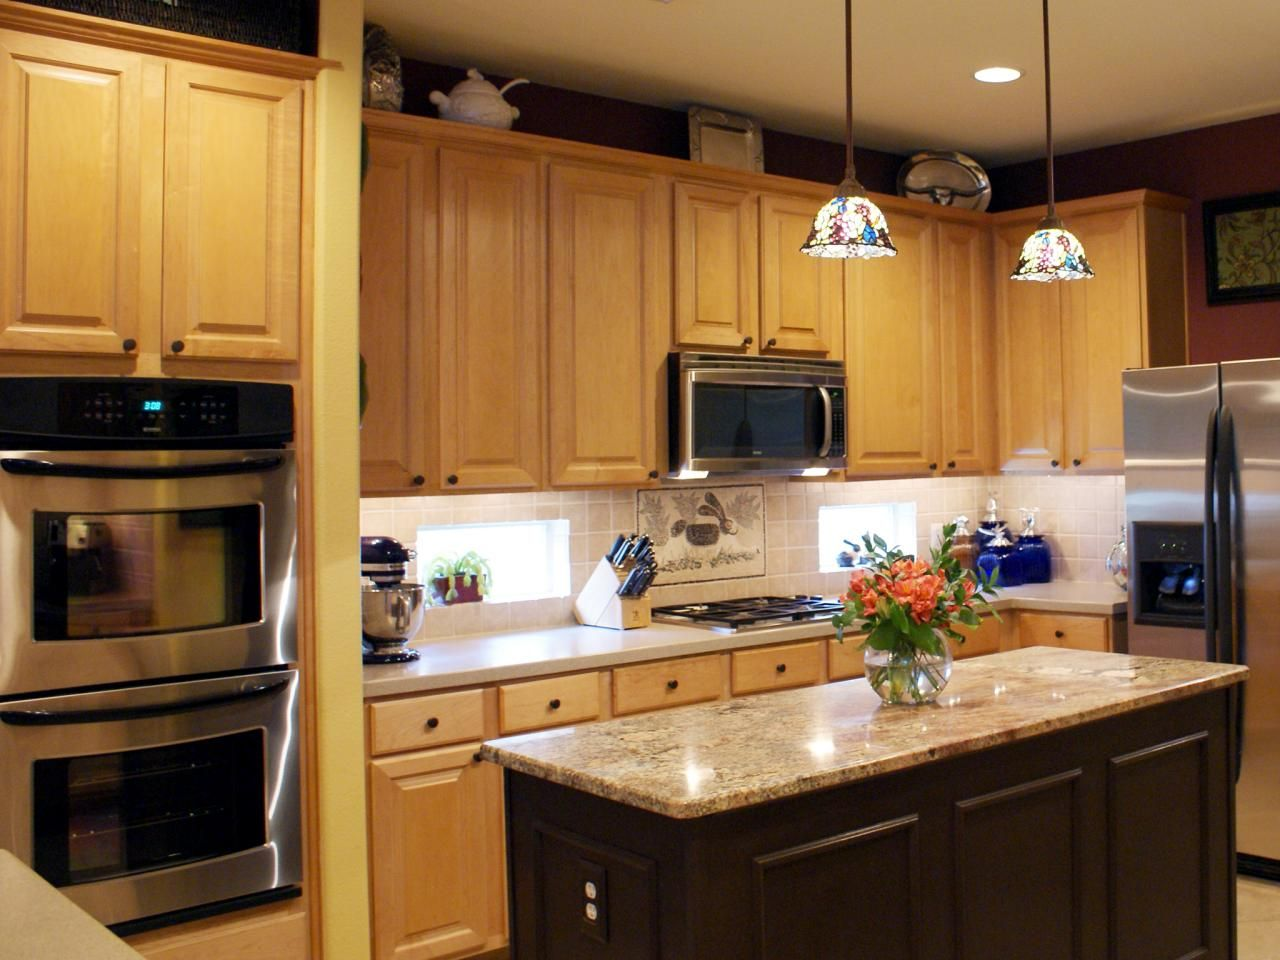 Kitchen Island Countertop Considerations Budget Kitchen Remodel Custom Kitchen Cabinets Cost Of Kitchen Cabinets